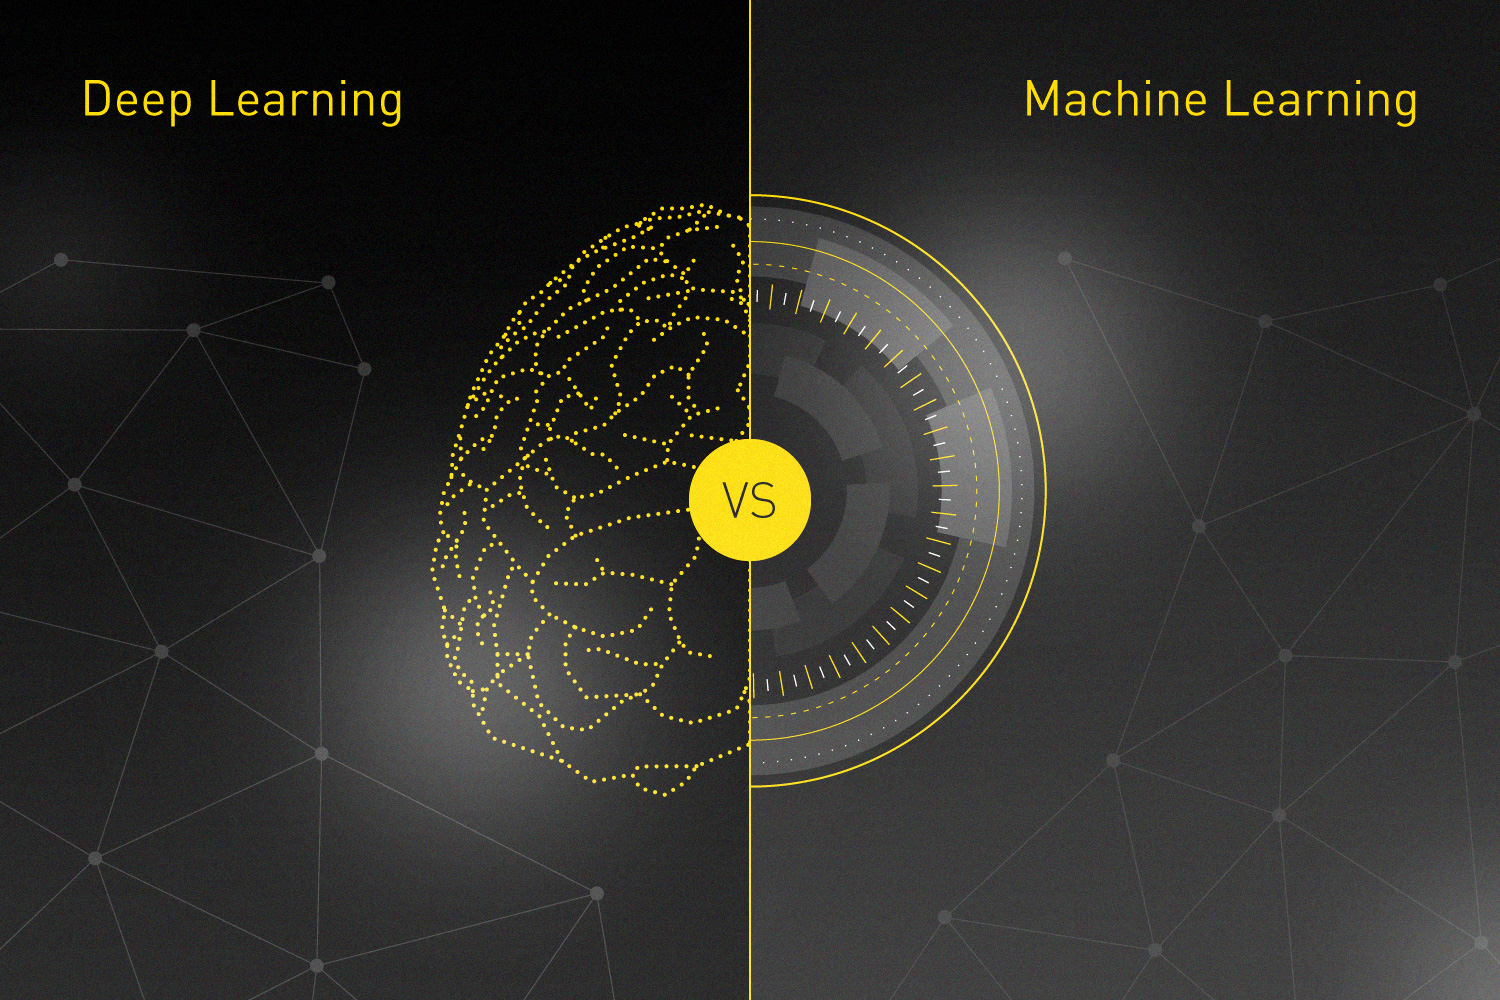 Machine Learning vs Deep Learning - When Do You Need An Expert?